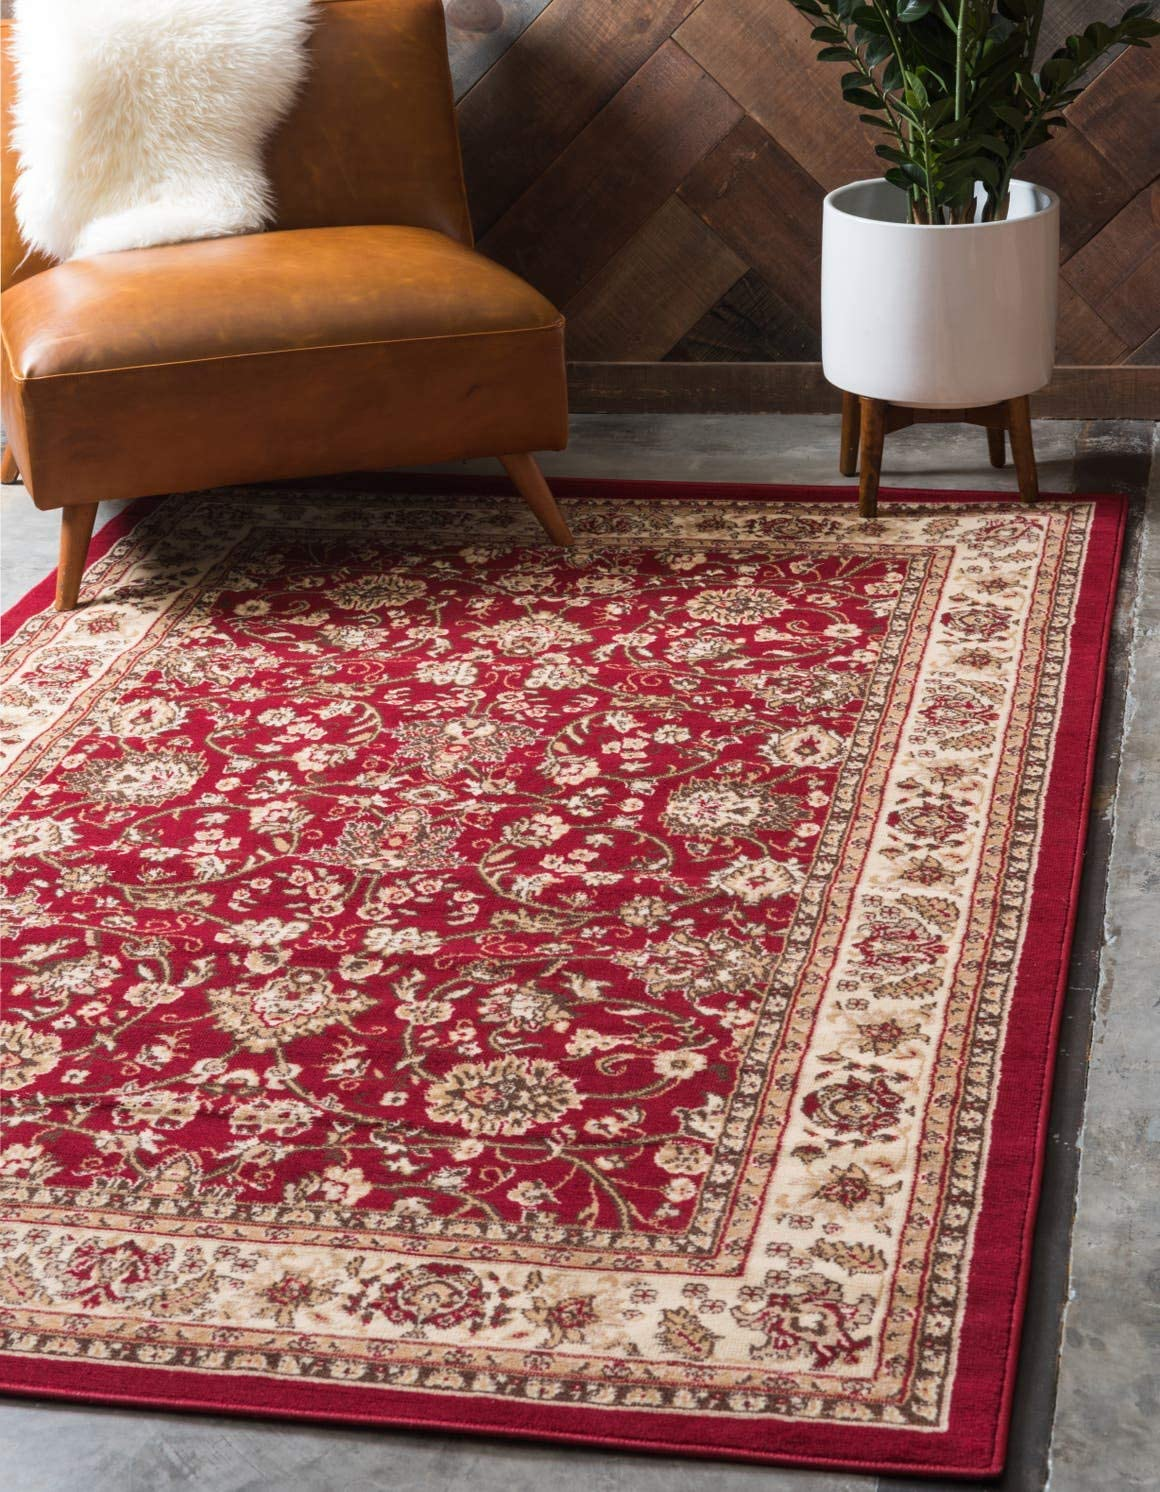 Unique Loom Kashan Collection Traditional Floral Overall Pattern with Border Burgundy Area Rug 9 0 x 12 0